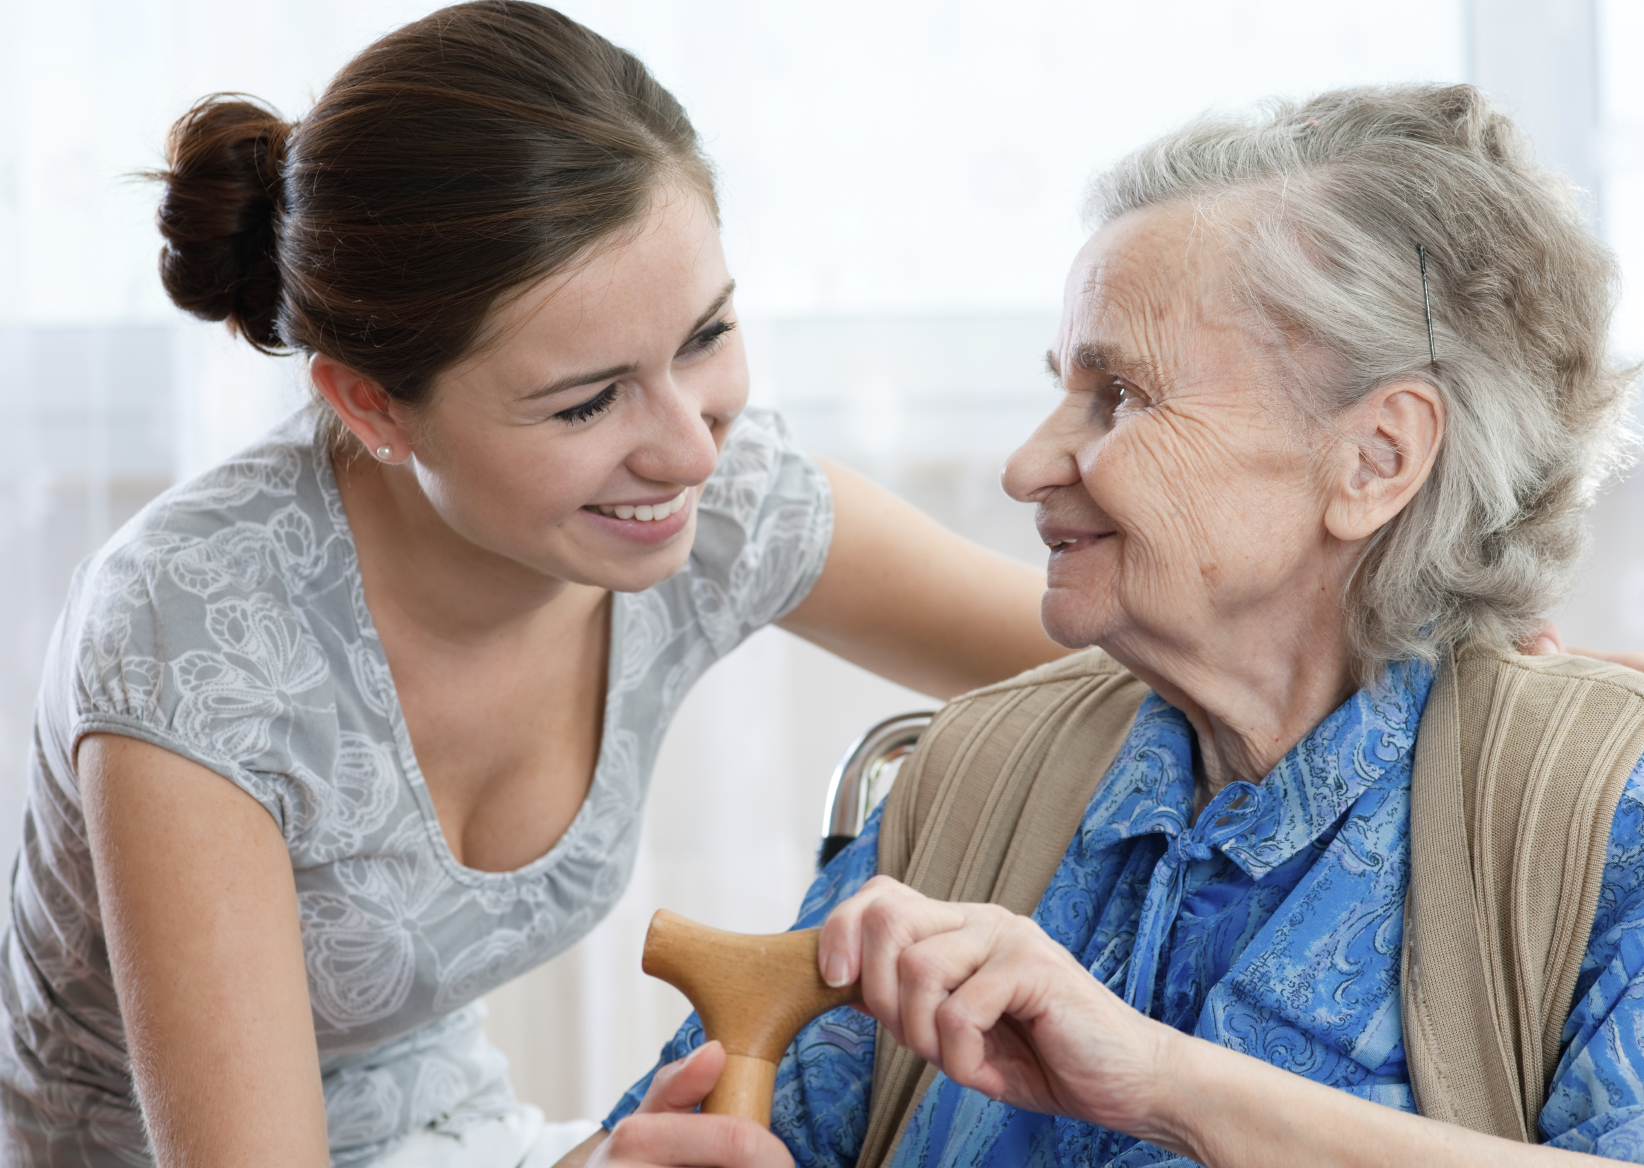 istock-photo-download-female-carer